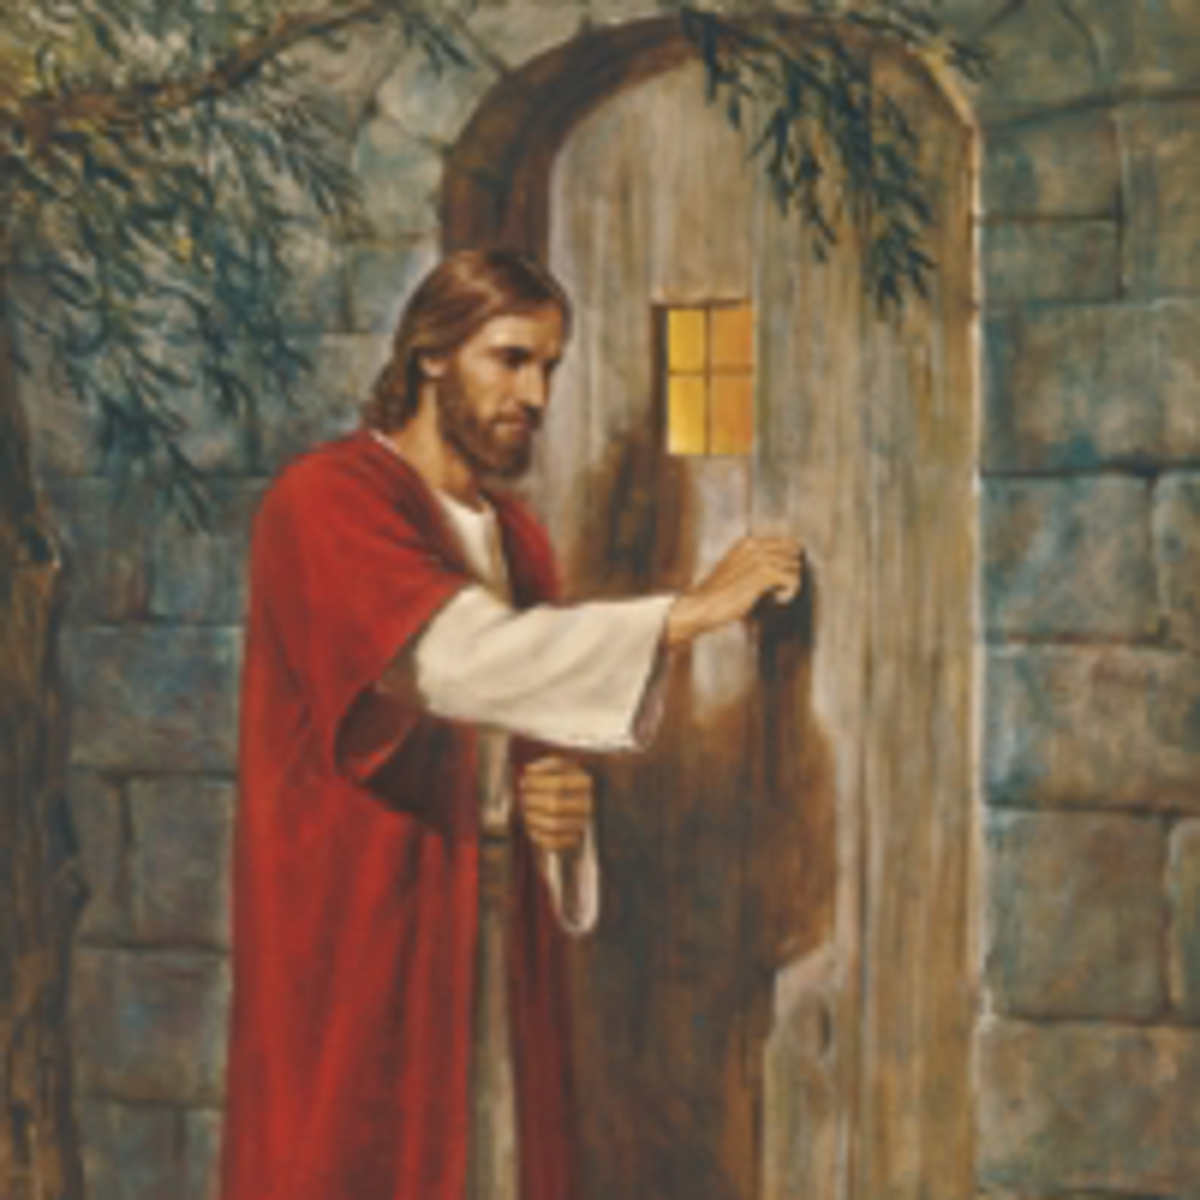 knocking at door